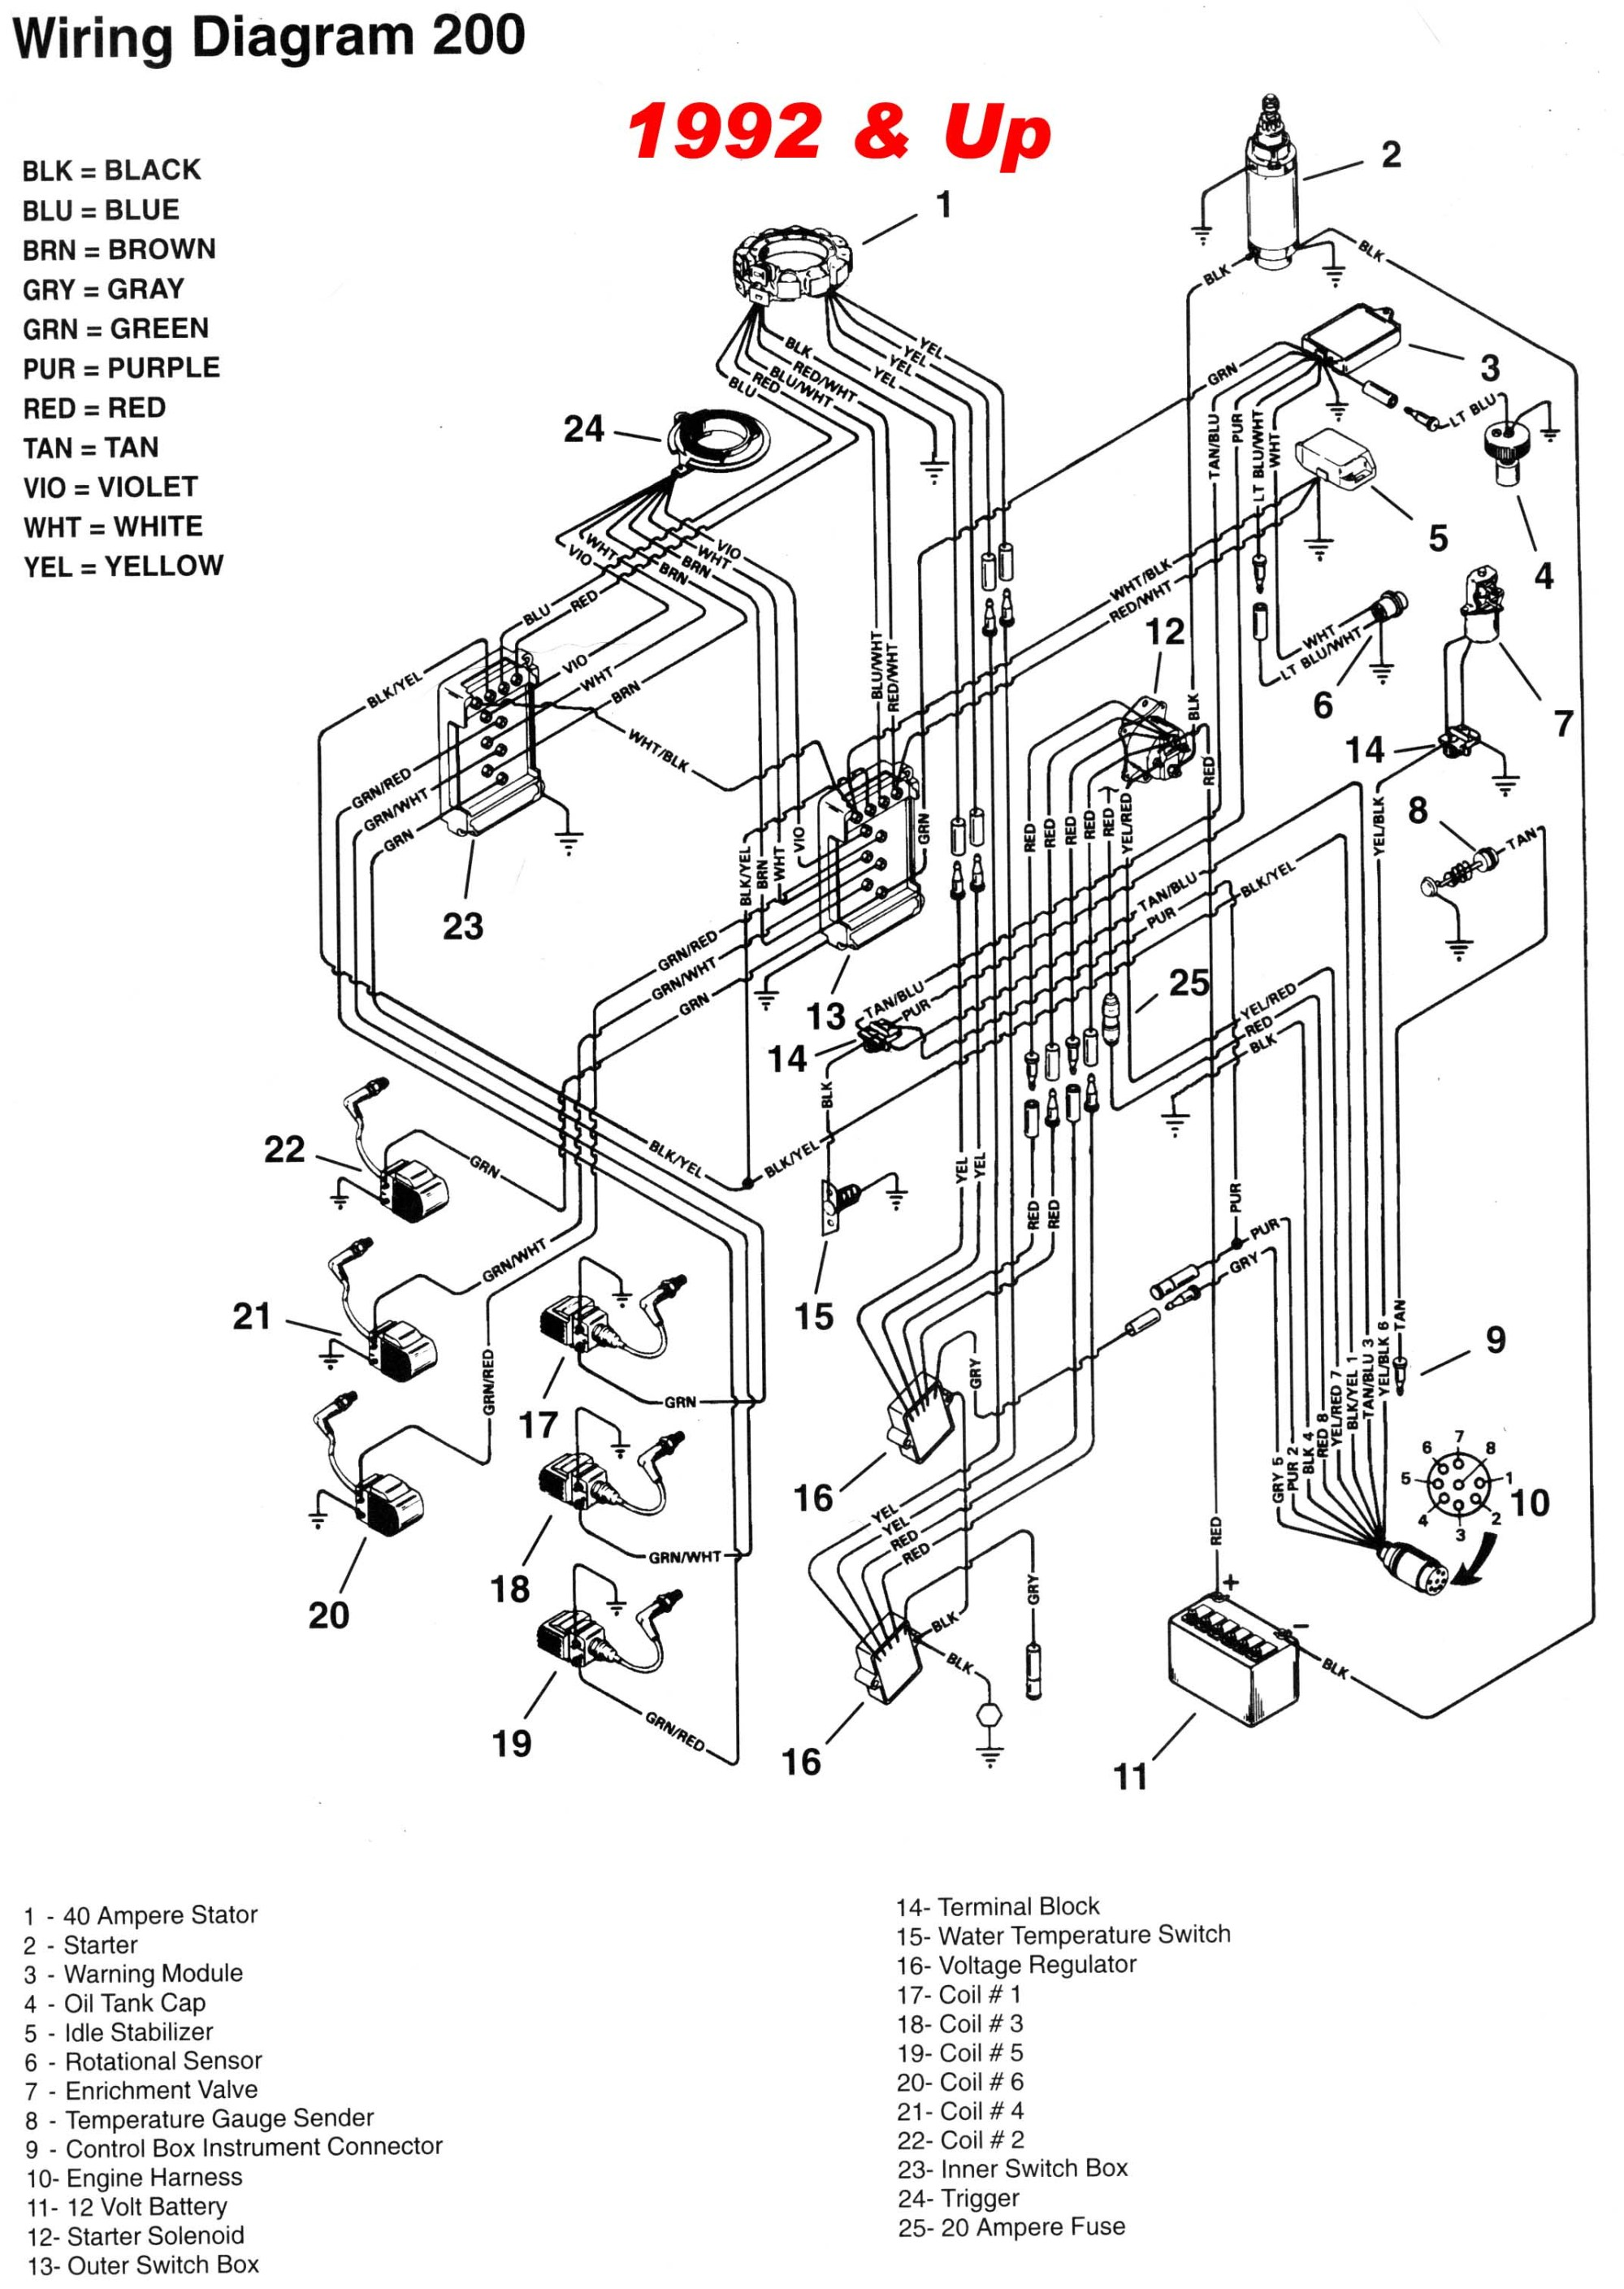 hight resolution of 60 hp mercury outboard wiring harness diagram wiring diagram expert 60 hp mercury outboard wiring harness